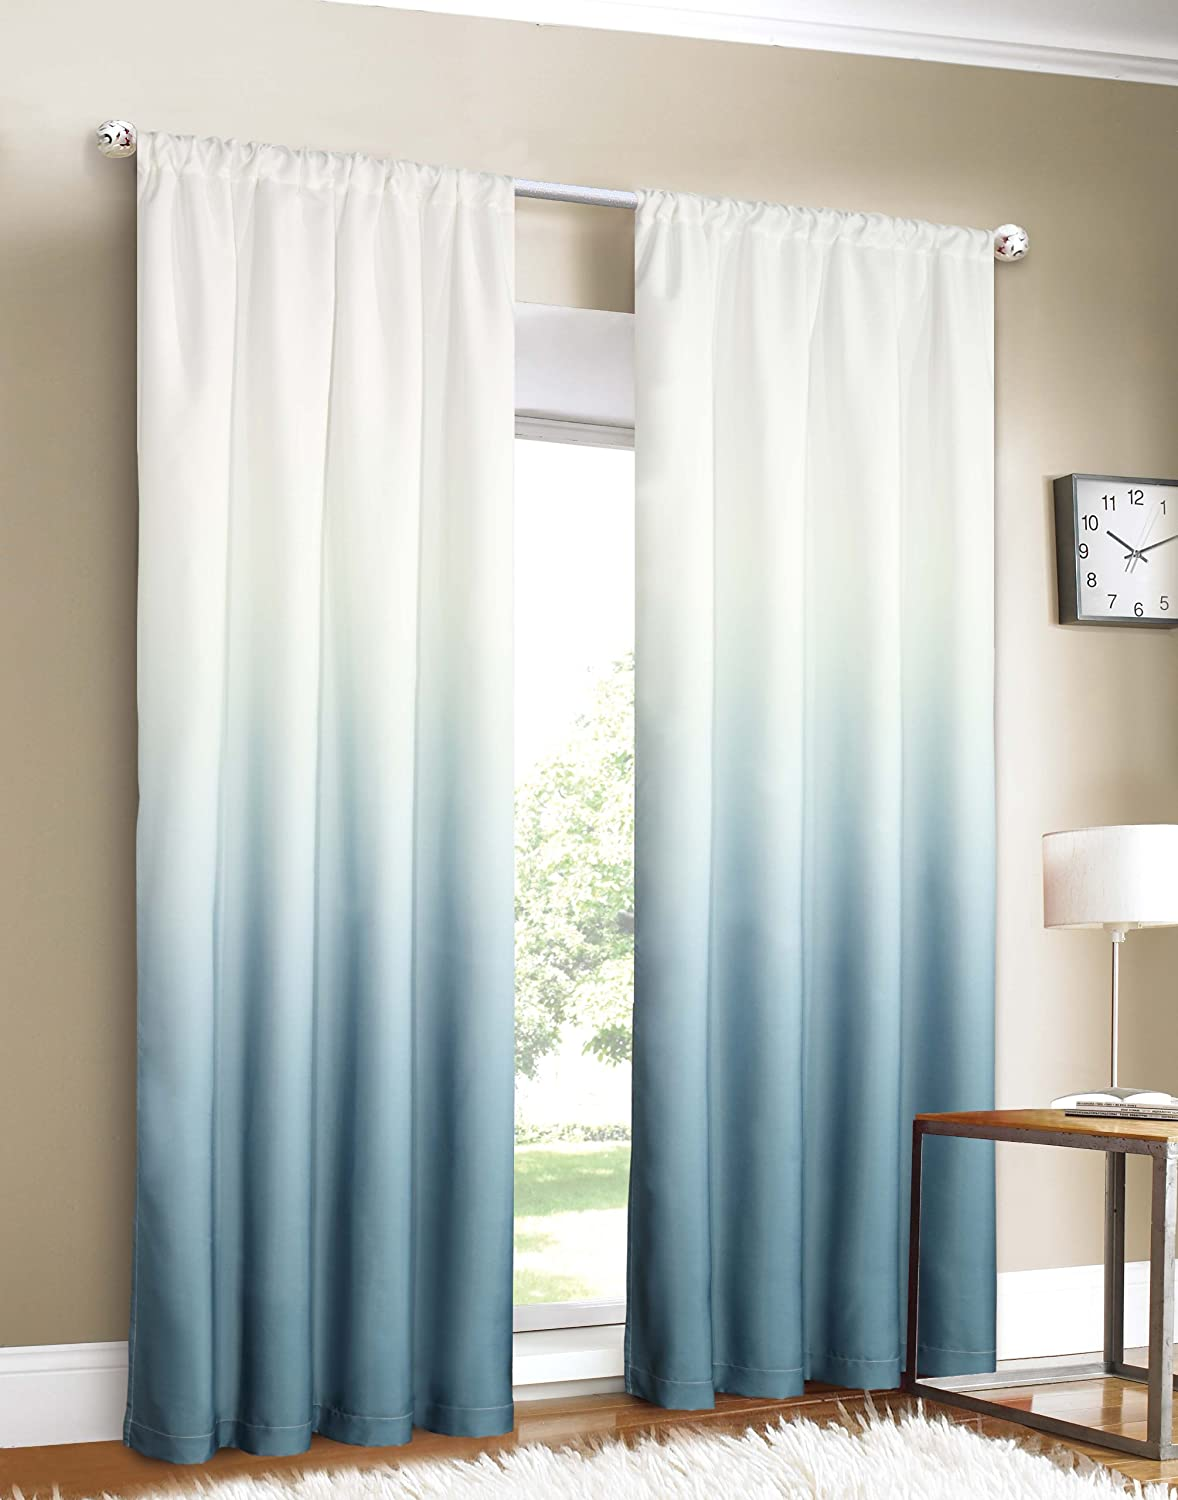 Amazon.com: Dainty Home Shades 2-Window Panel Rod Pocket Set, 40 by ...